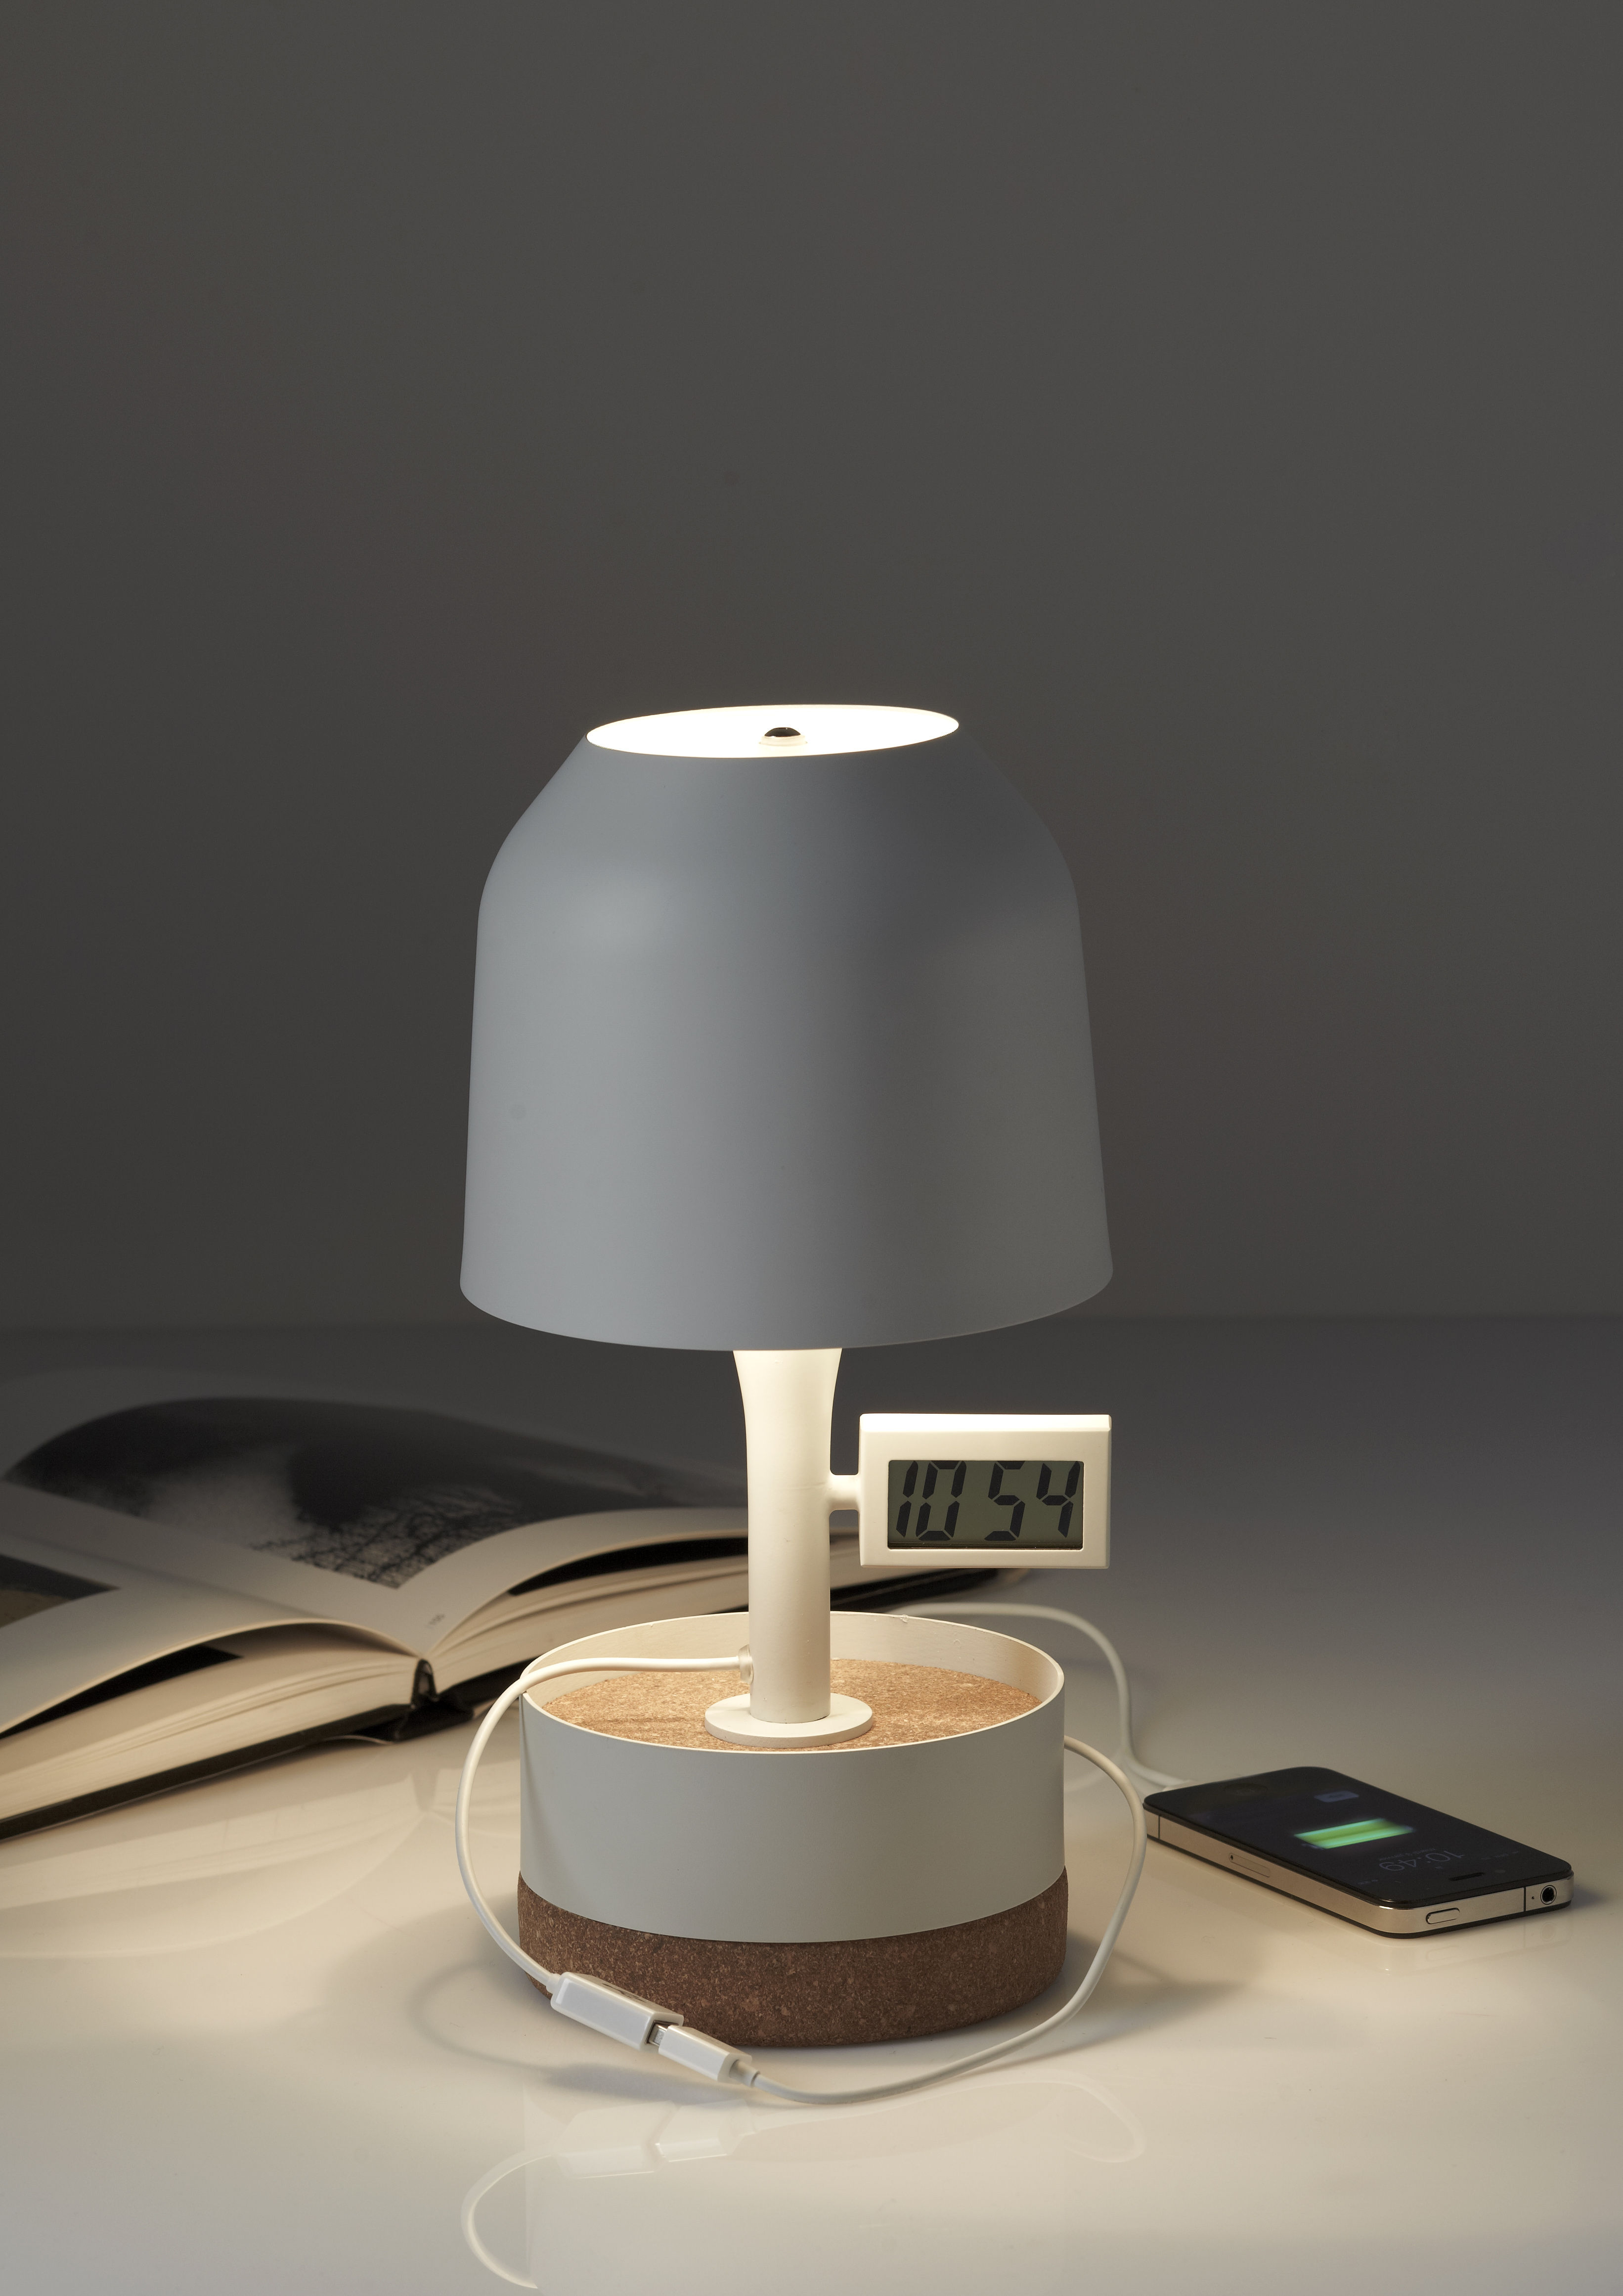 Hodge Podge Table Lamp With Alarm And Usb Port H 30 Cm